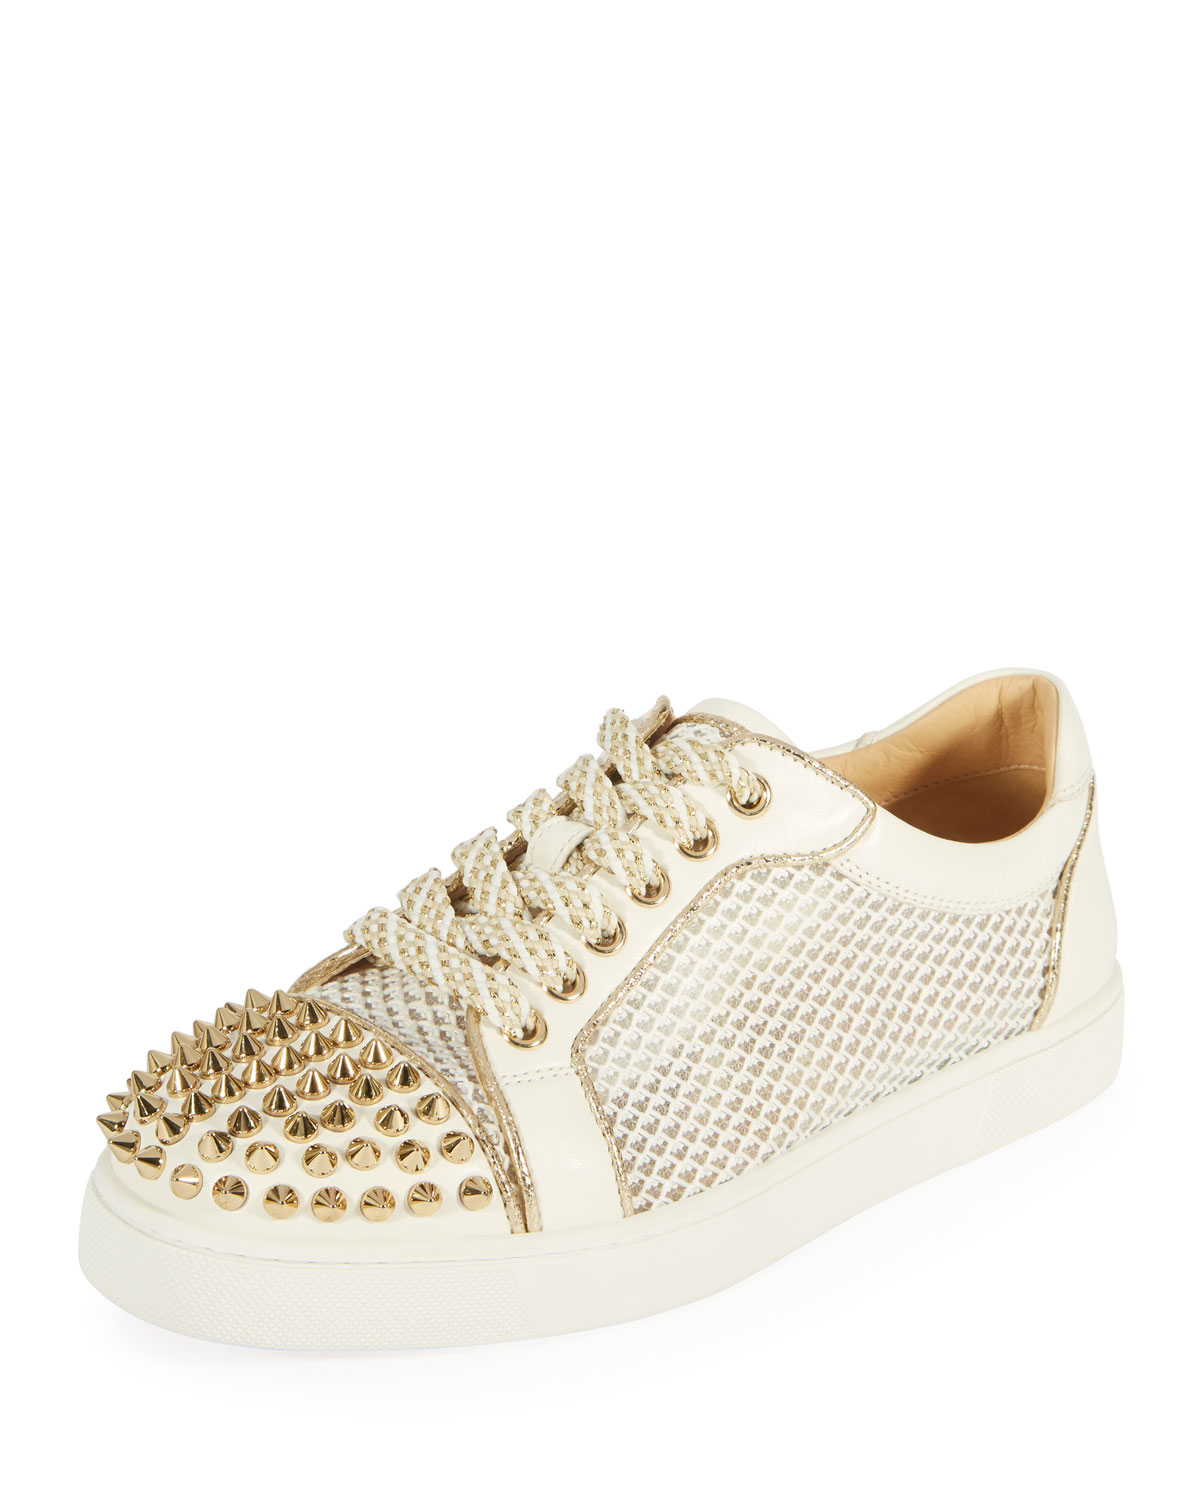 0bfcbc30049 AC Viera Spikes Red Sole Low-Top Sneakers